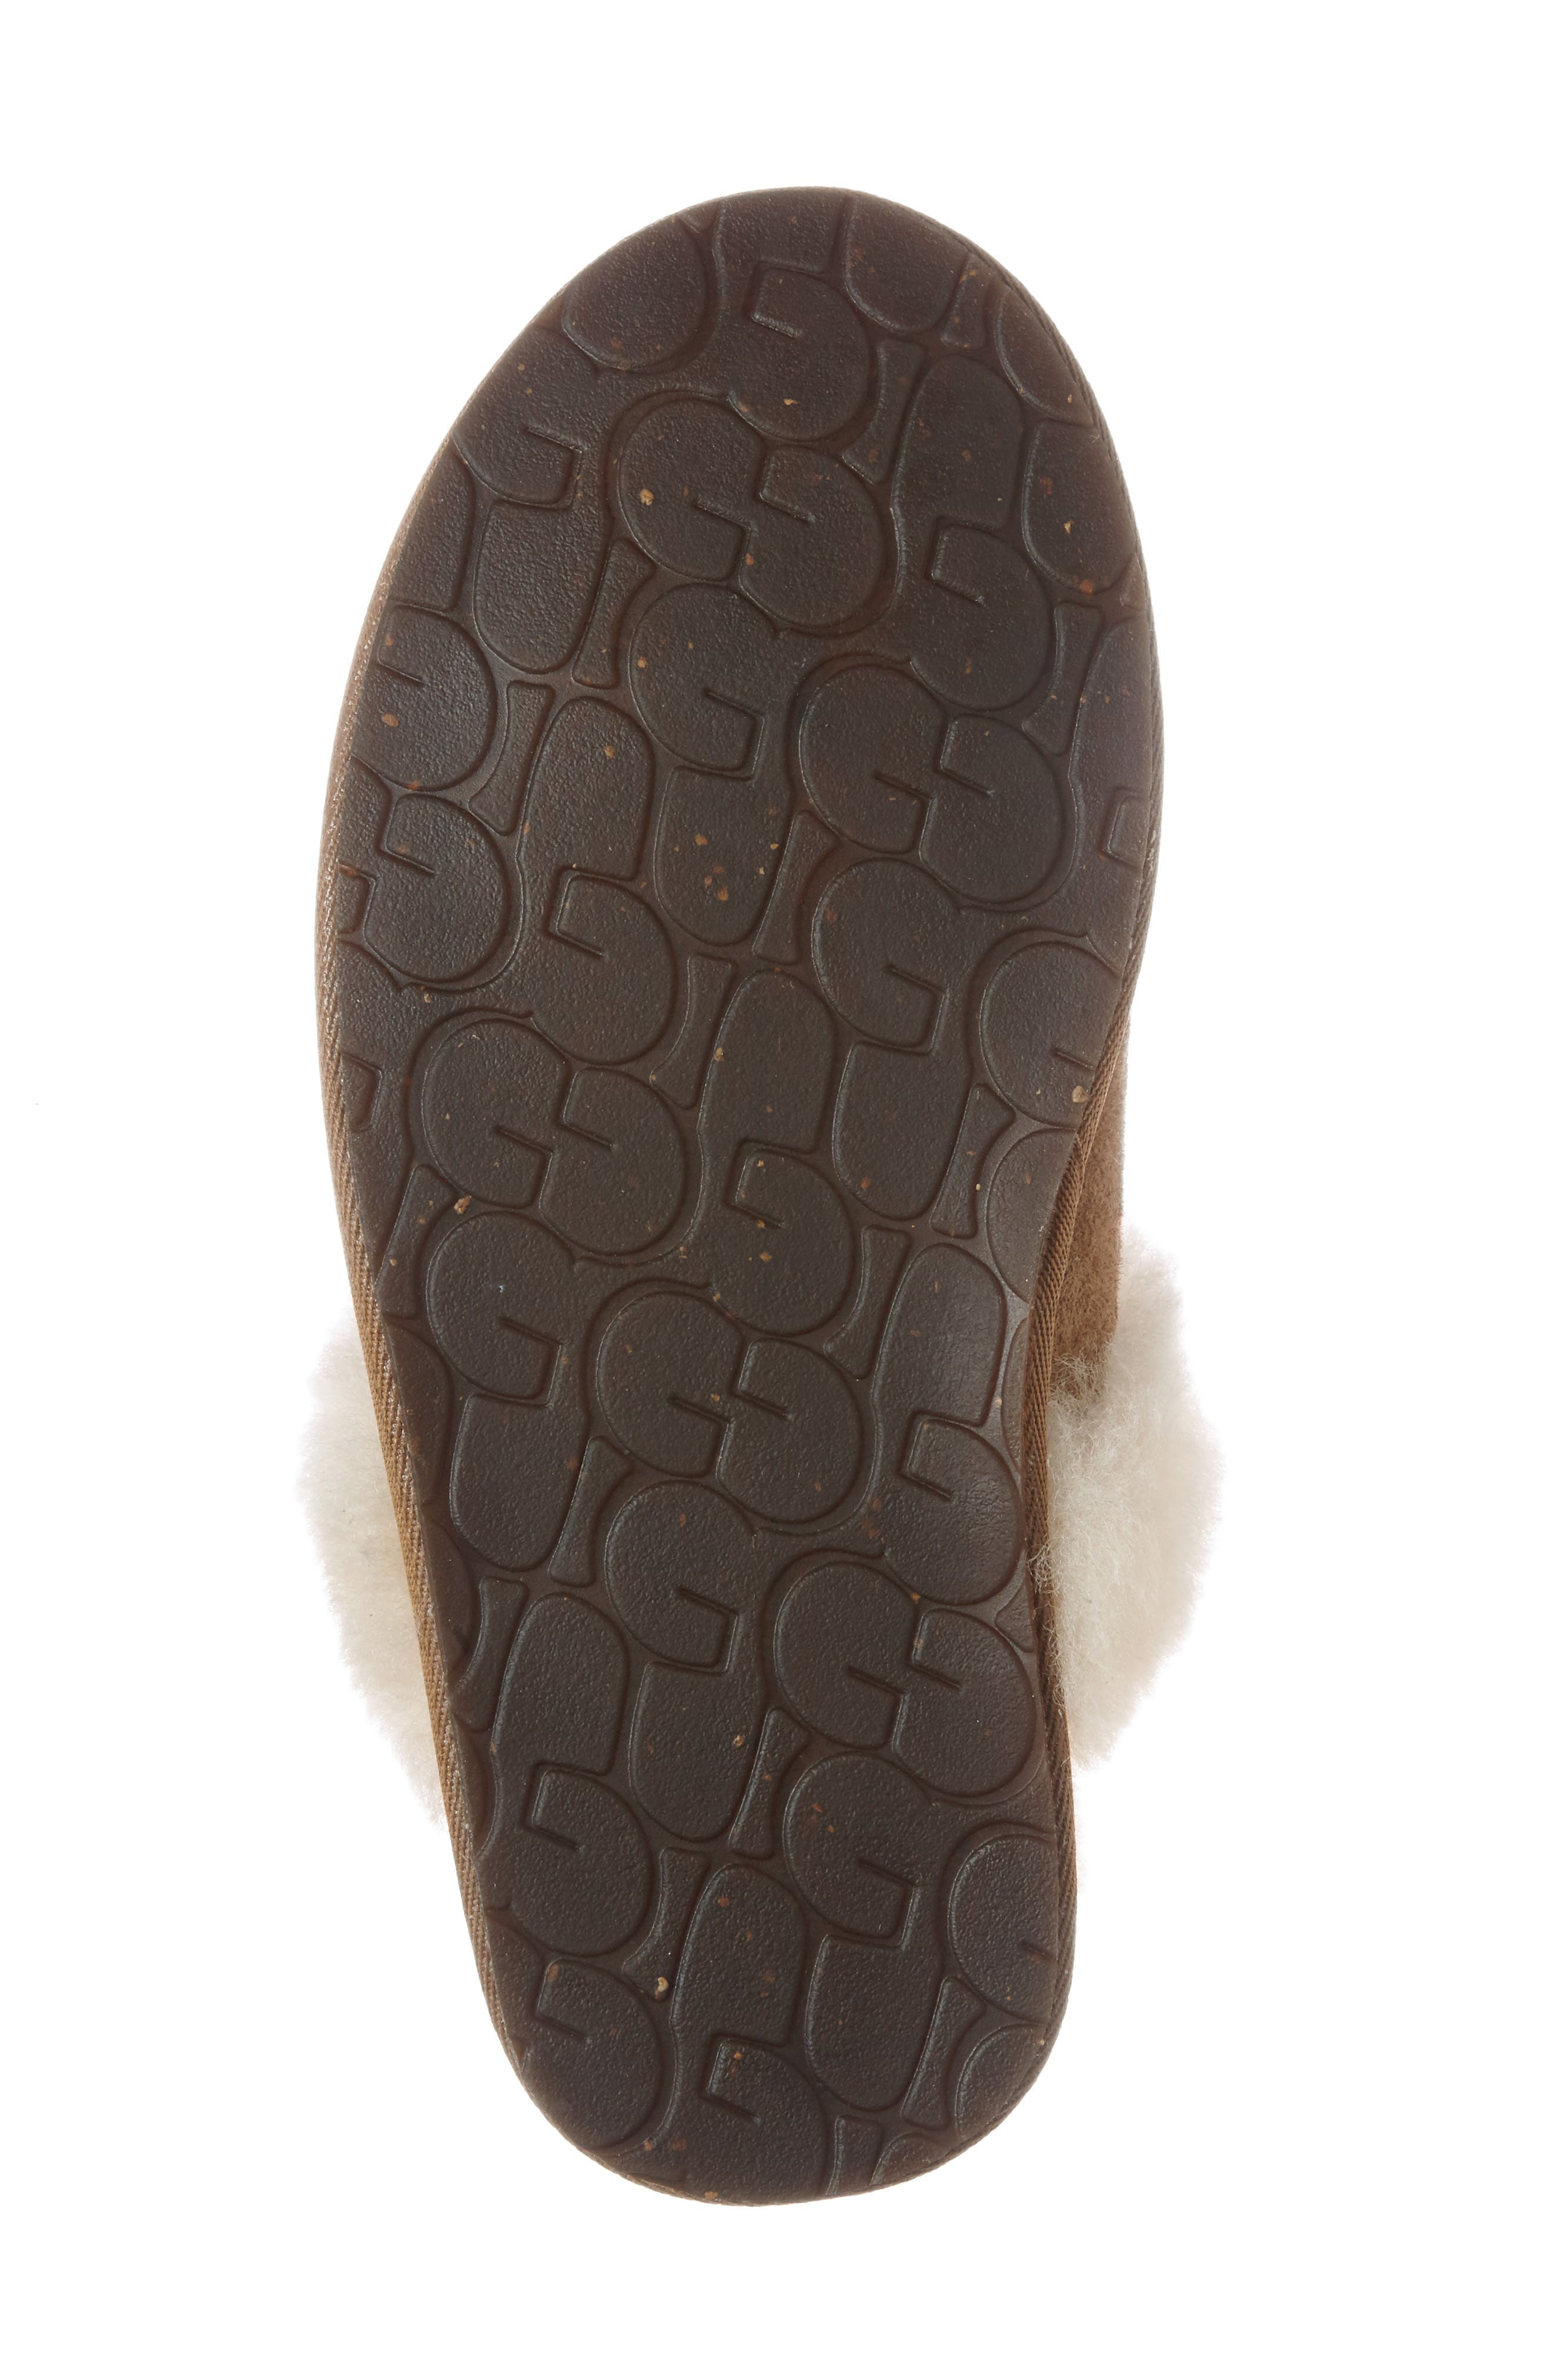 UGG<SUP>®</SUP>, Scuffette II Water Resistant Slipper, Alternate thumbnail 4, color, 219